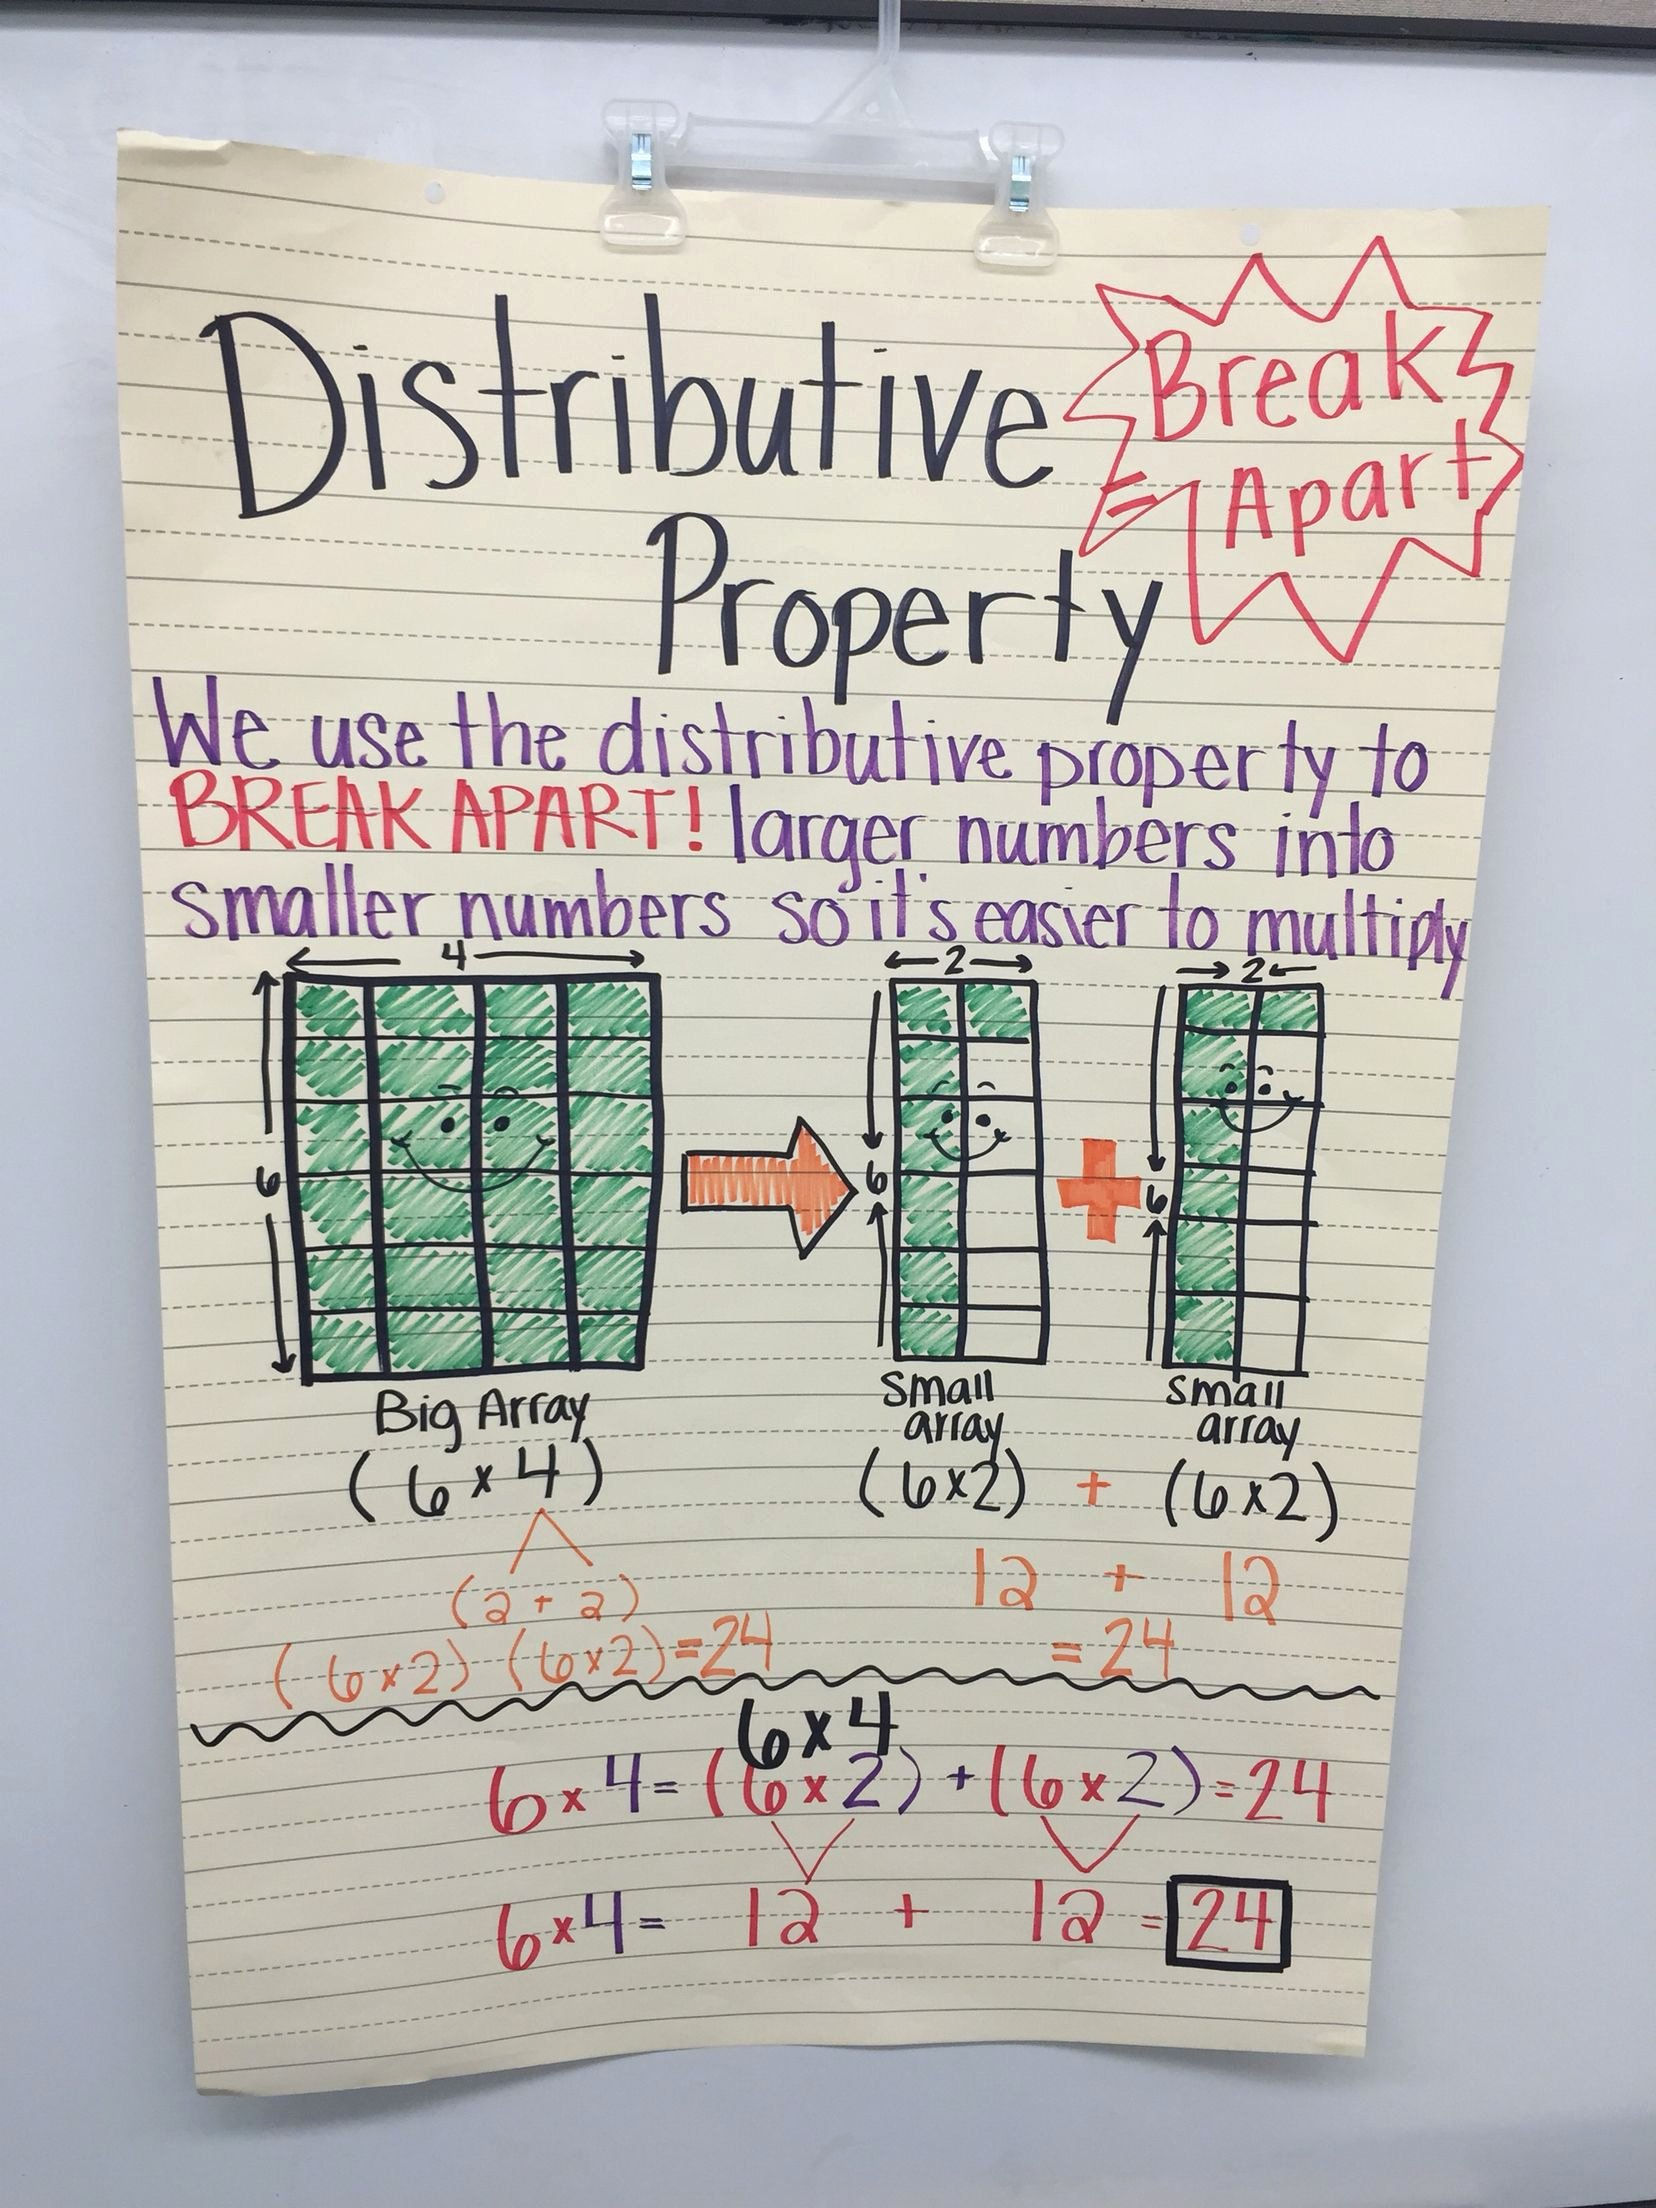 Break Apart Method Multiplication Worksheets Fresh Talking About the Distributive Property Used Arrays to Show